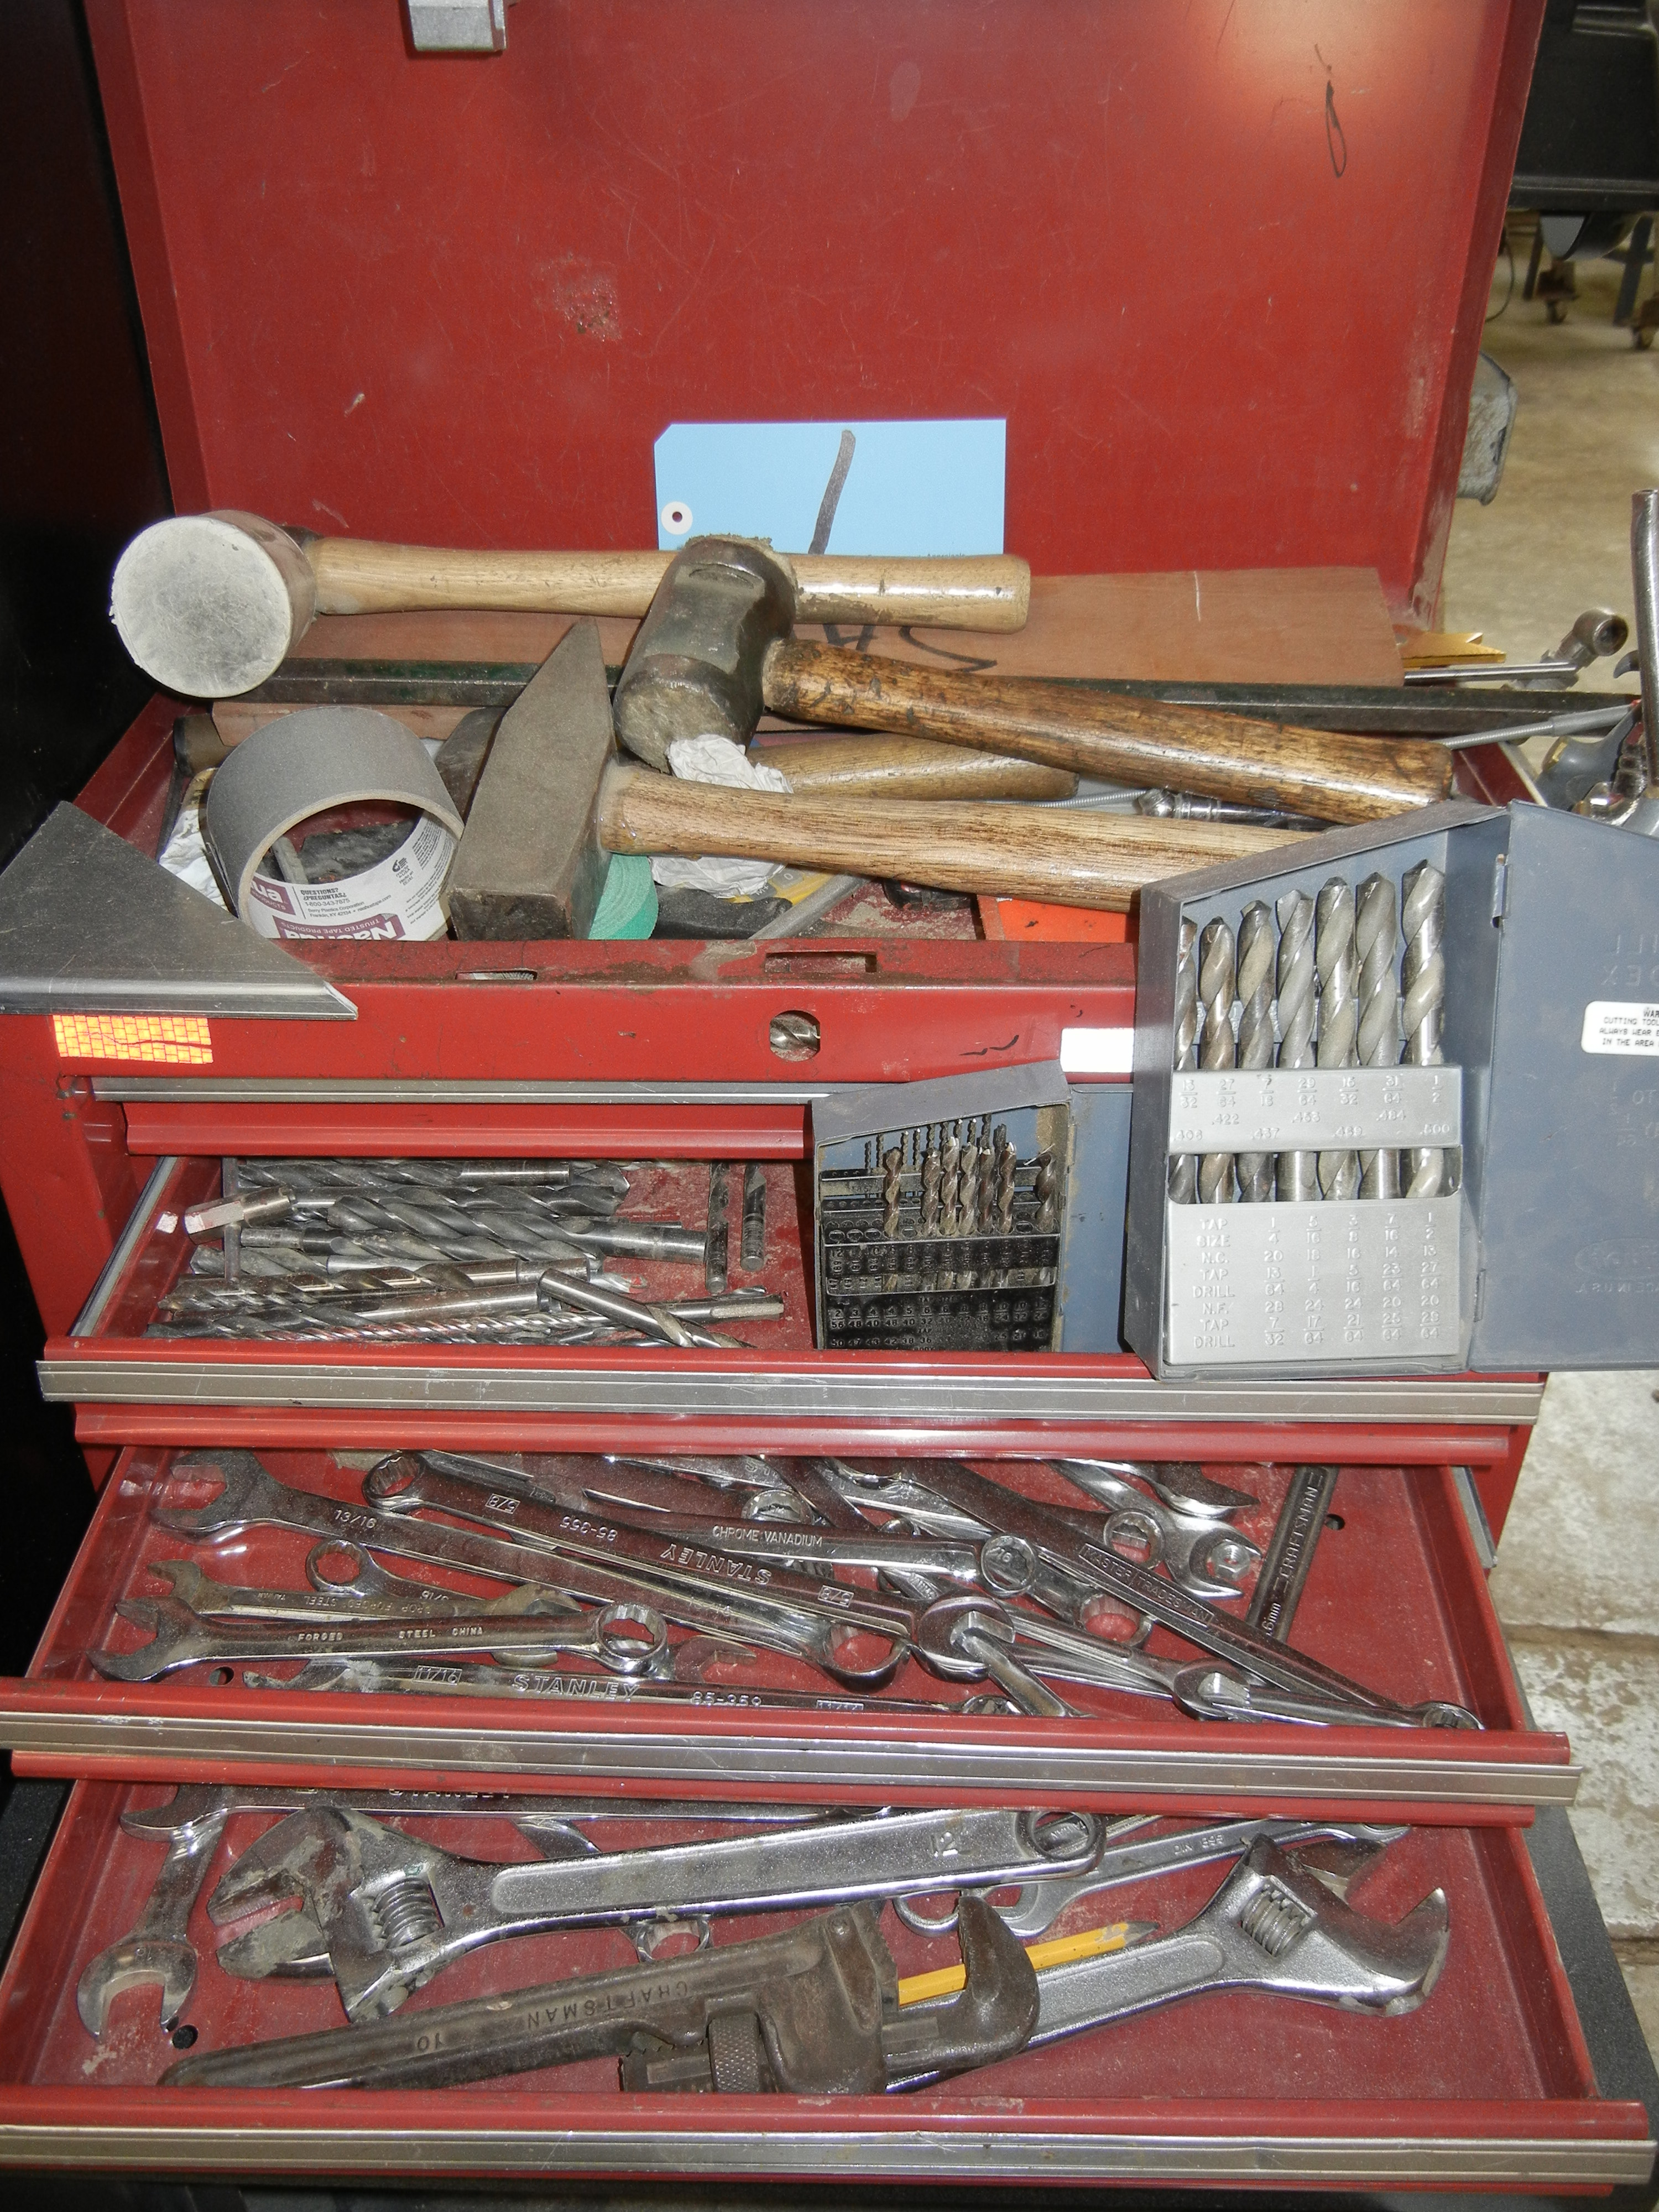 Lot-(1) 4-Drawer Tool Box with Contents and Tools on Wall - Image 3 of 3